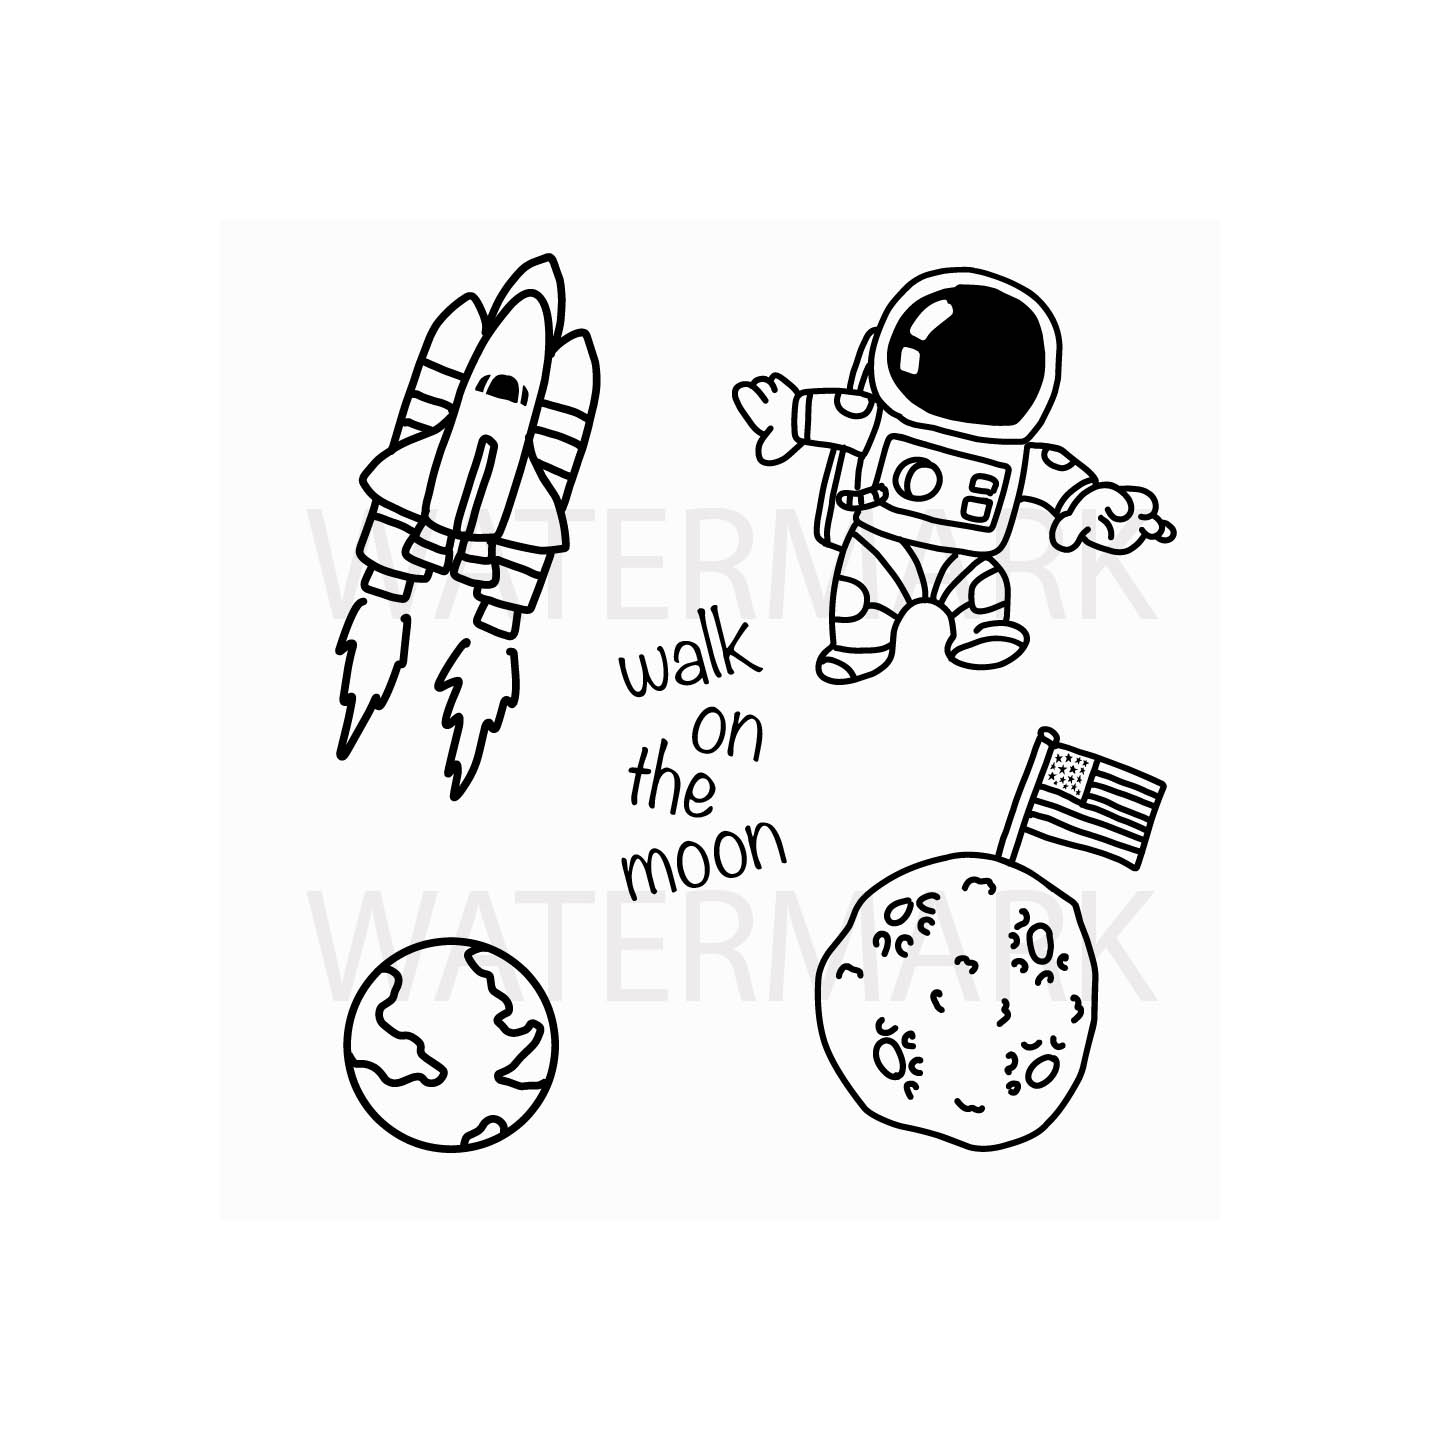 Astronaut Walking on the Moon - SVG/JPG/PNG Hand Drawing example image 1